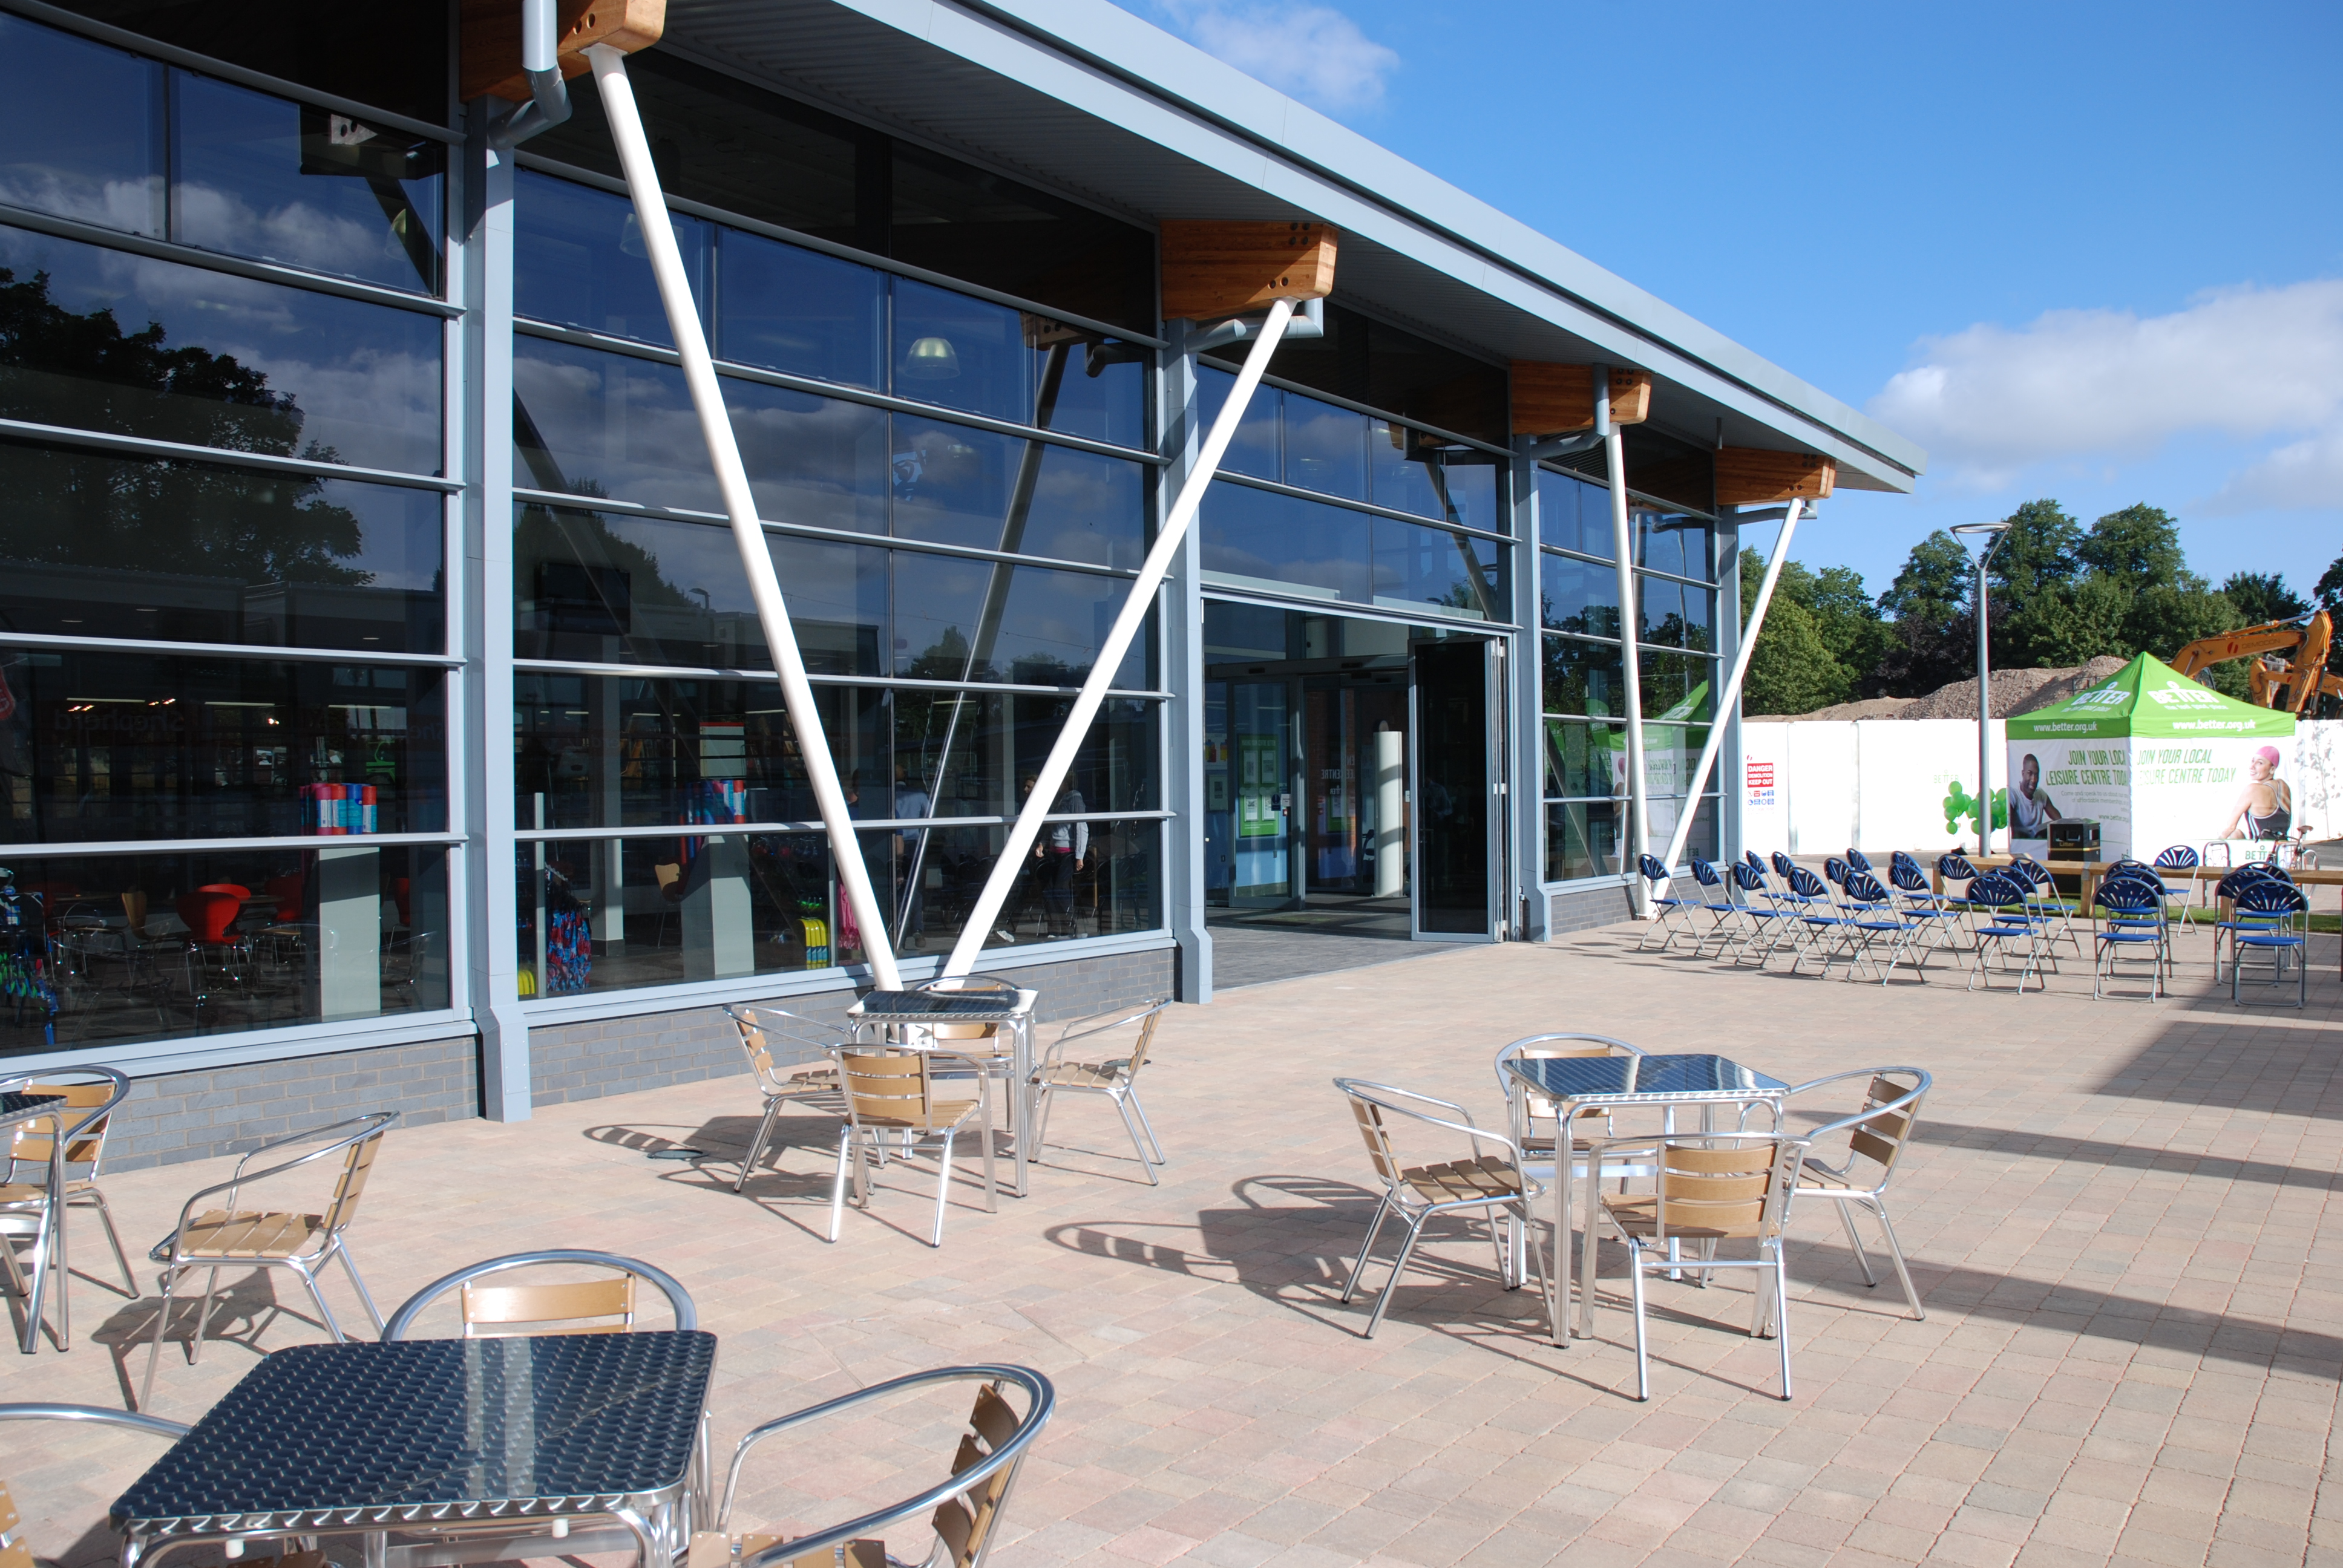 The Queen's Diamond Jubilee centre on its opening weekend